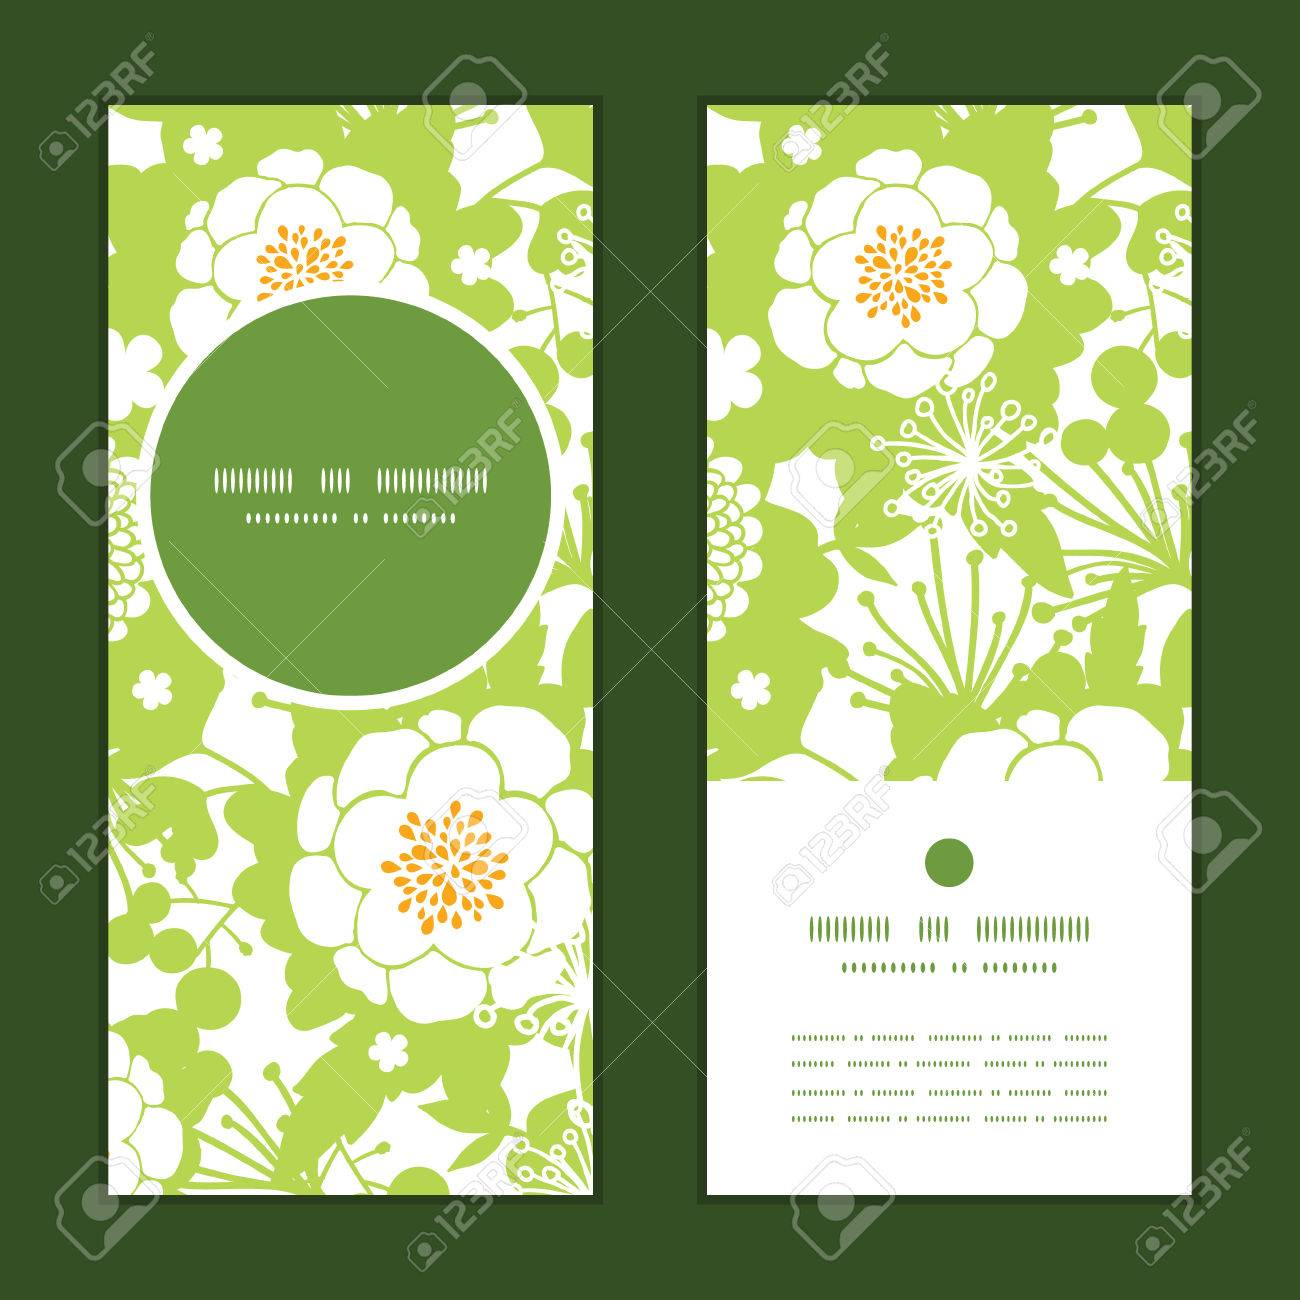 Vector Green And Golden Garden Silhouettes Vertical Round Frame